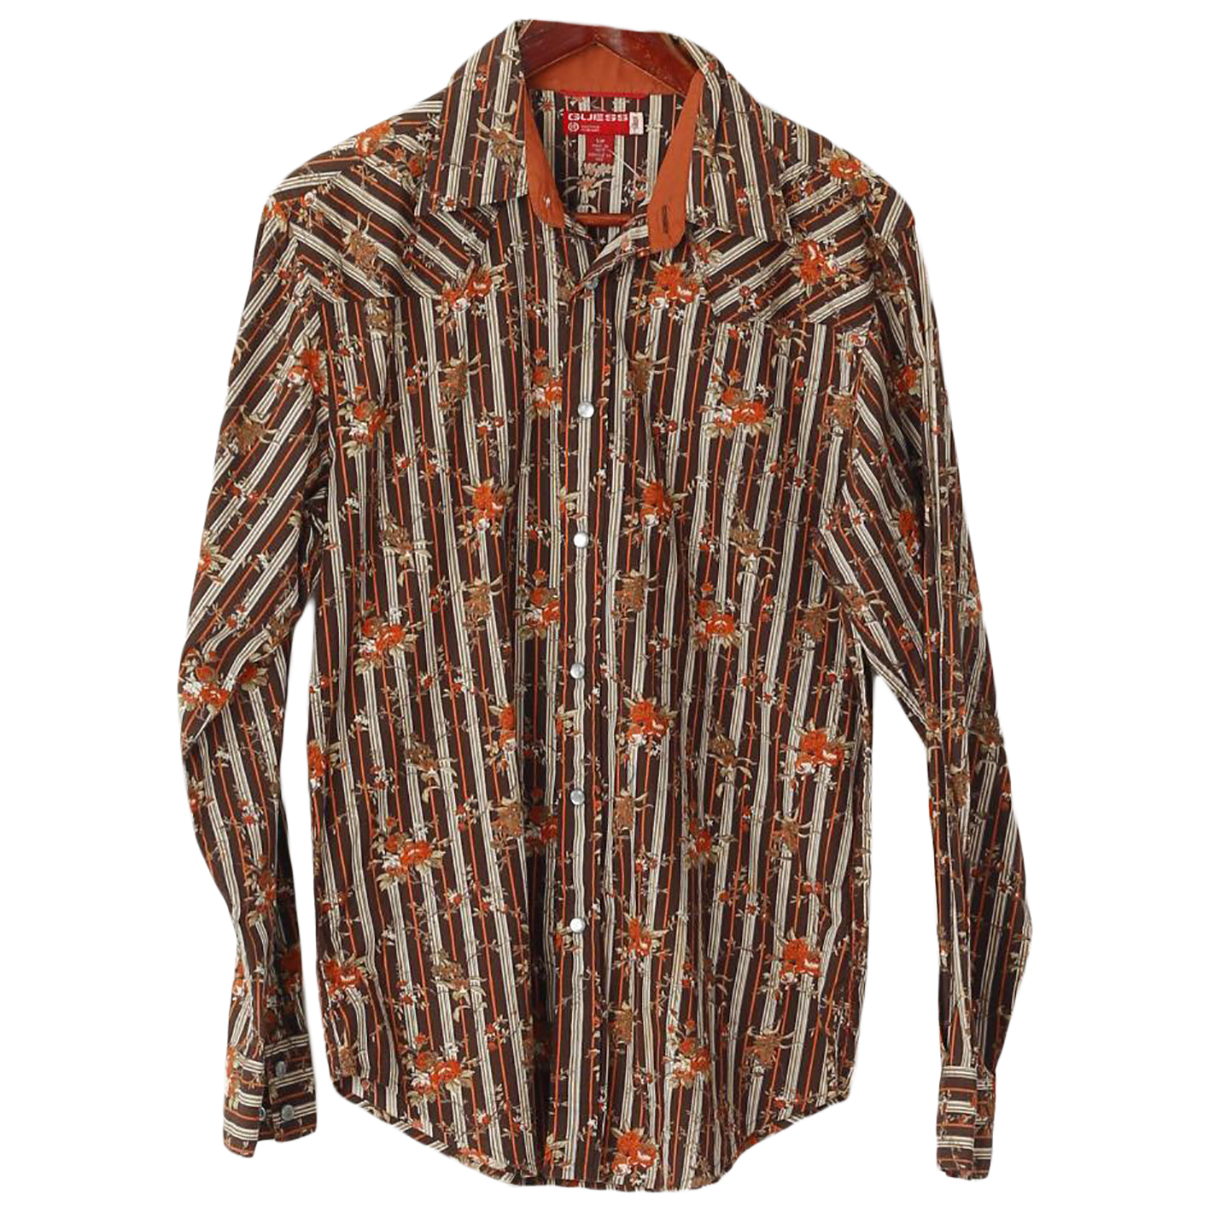 Guess N Brown Cotton Shirts for Men S International